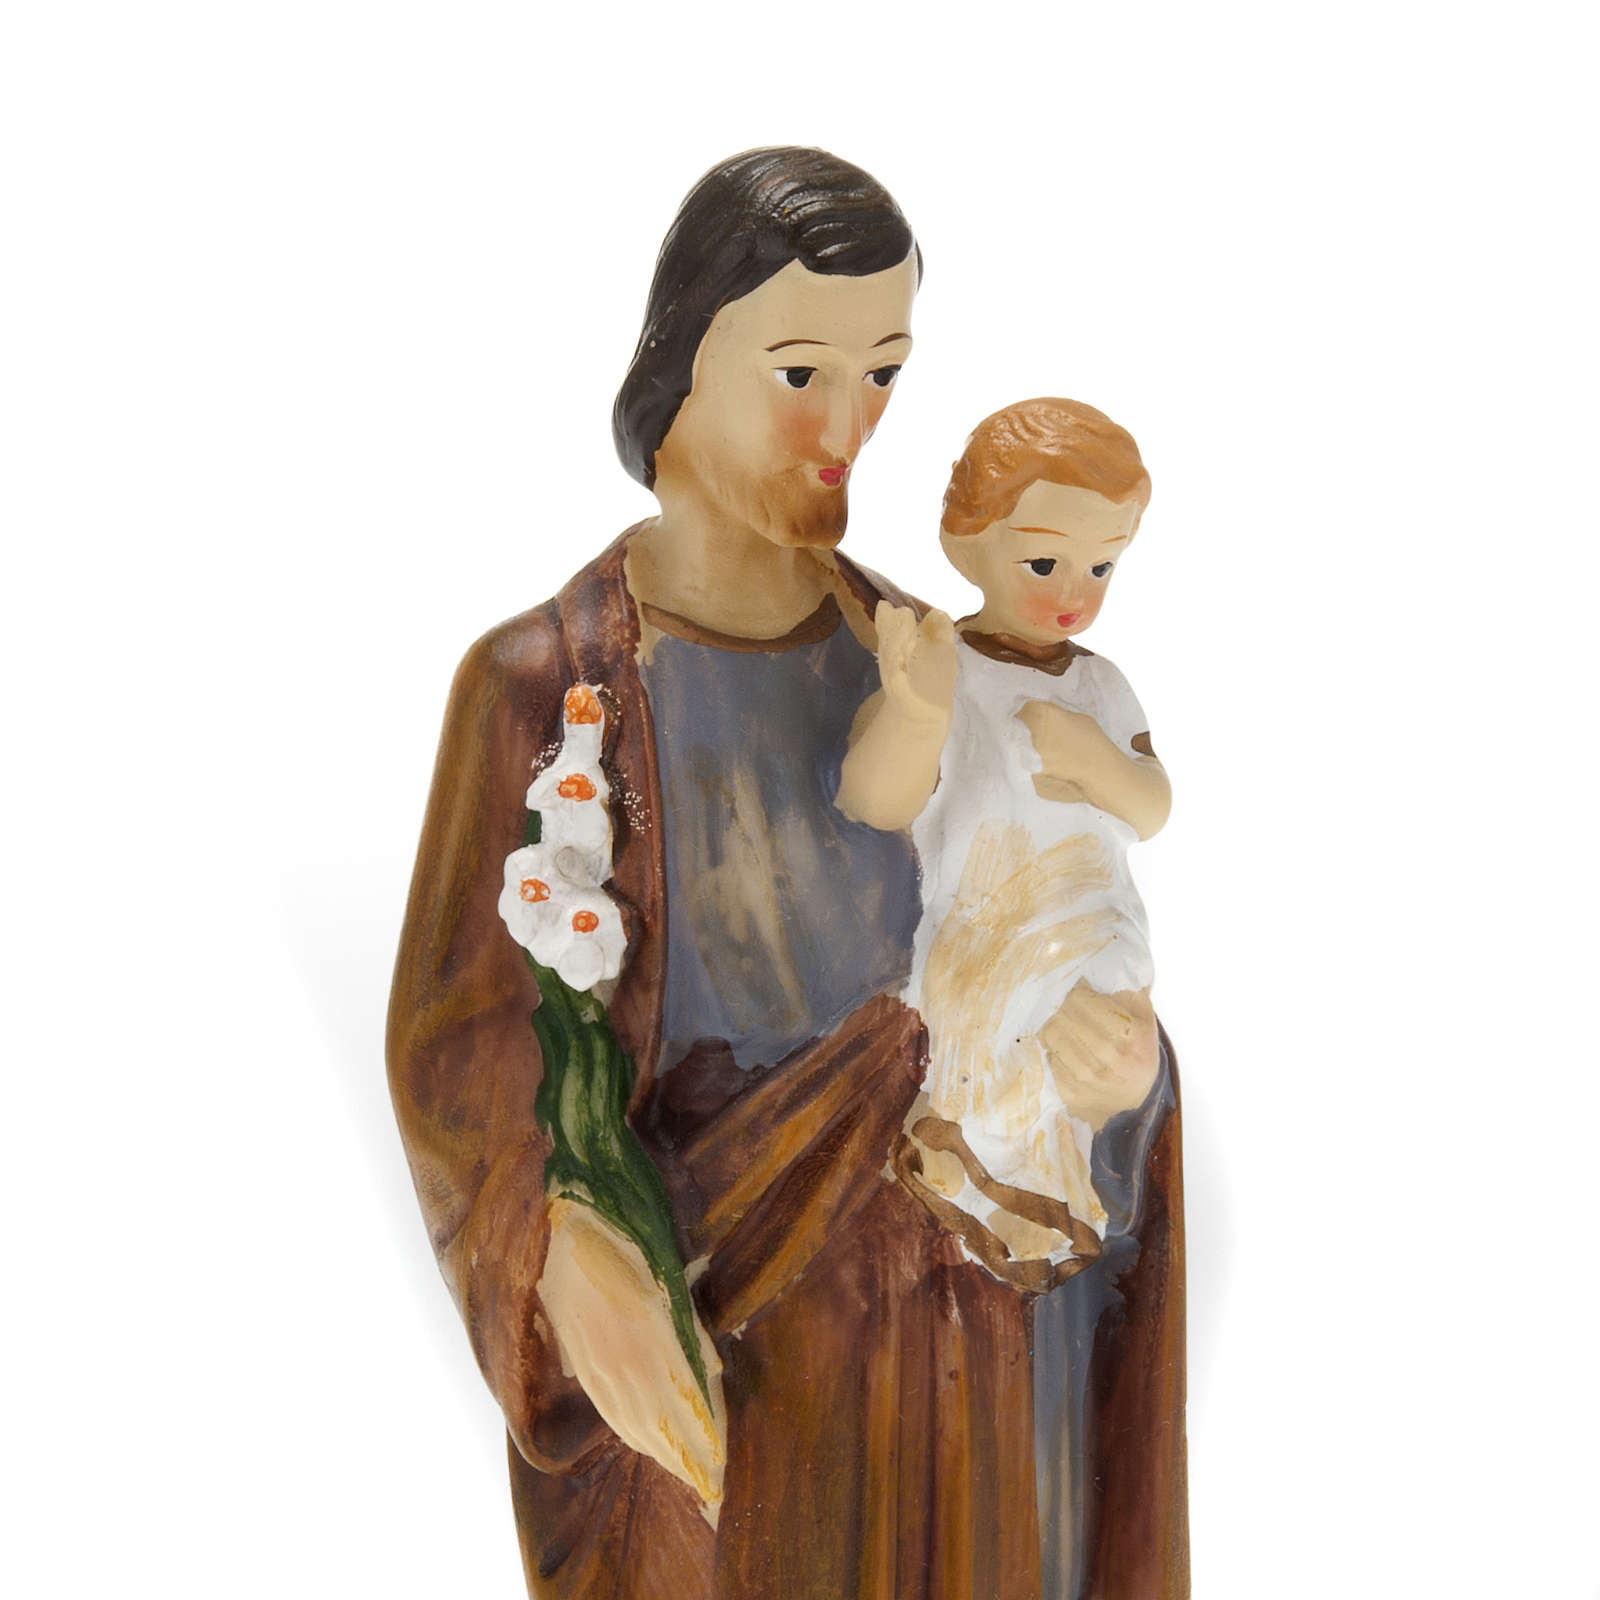 Saint Joseph with infant Jesus, resin statue, 20 cm 4